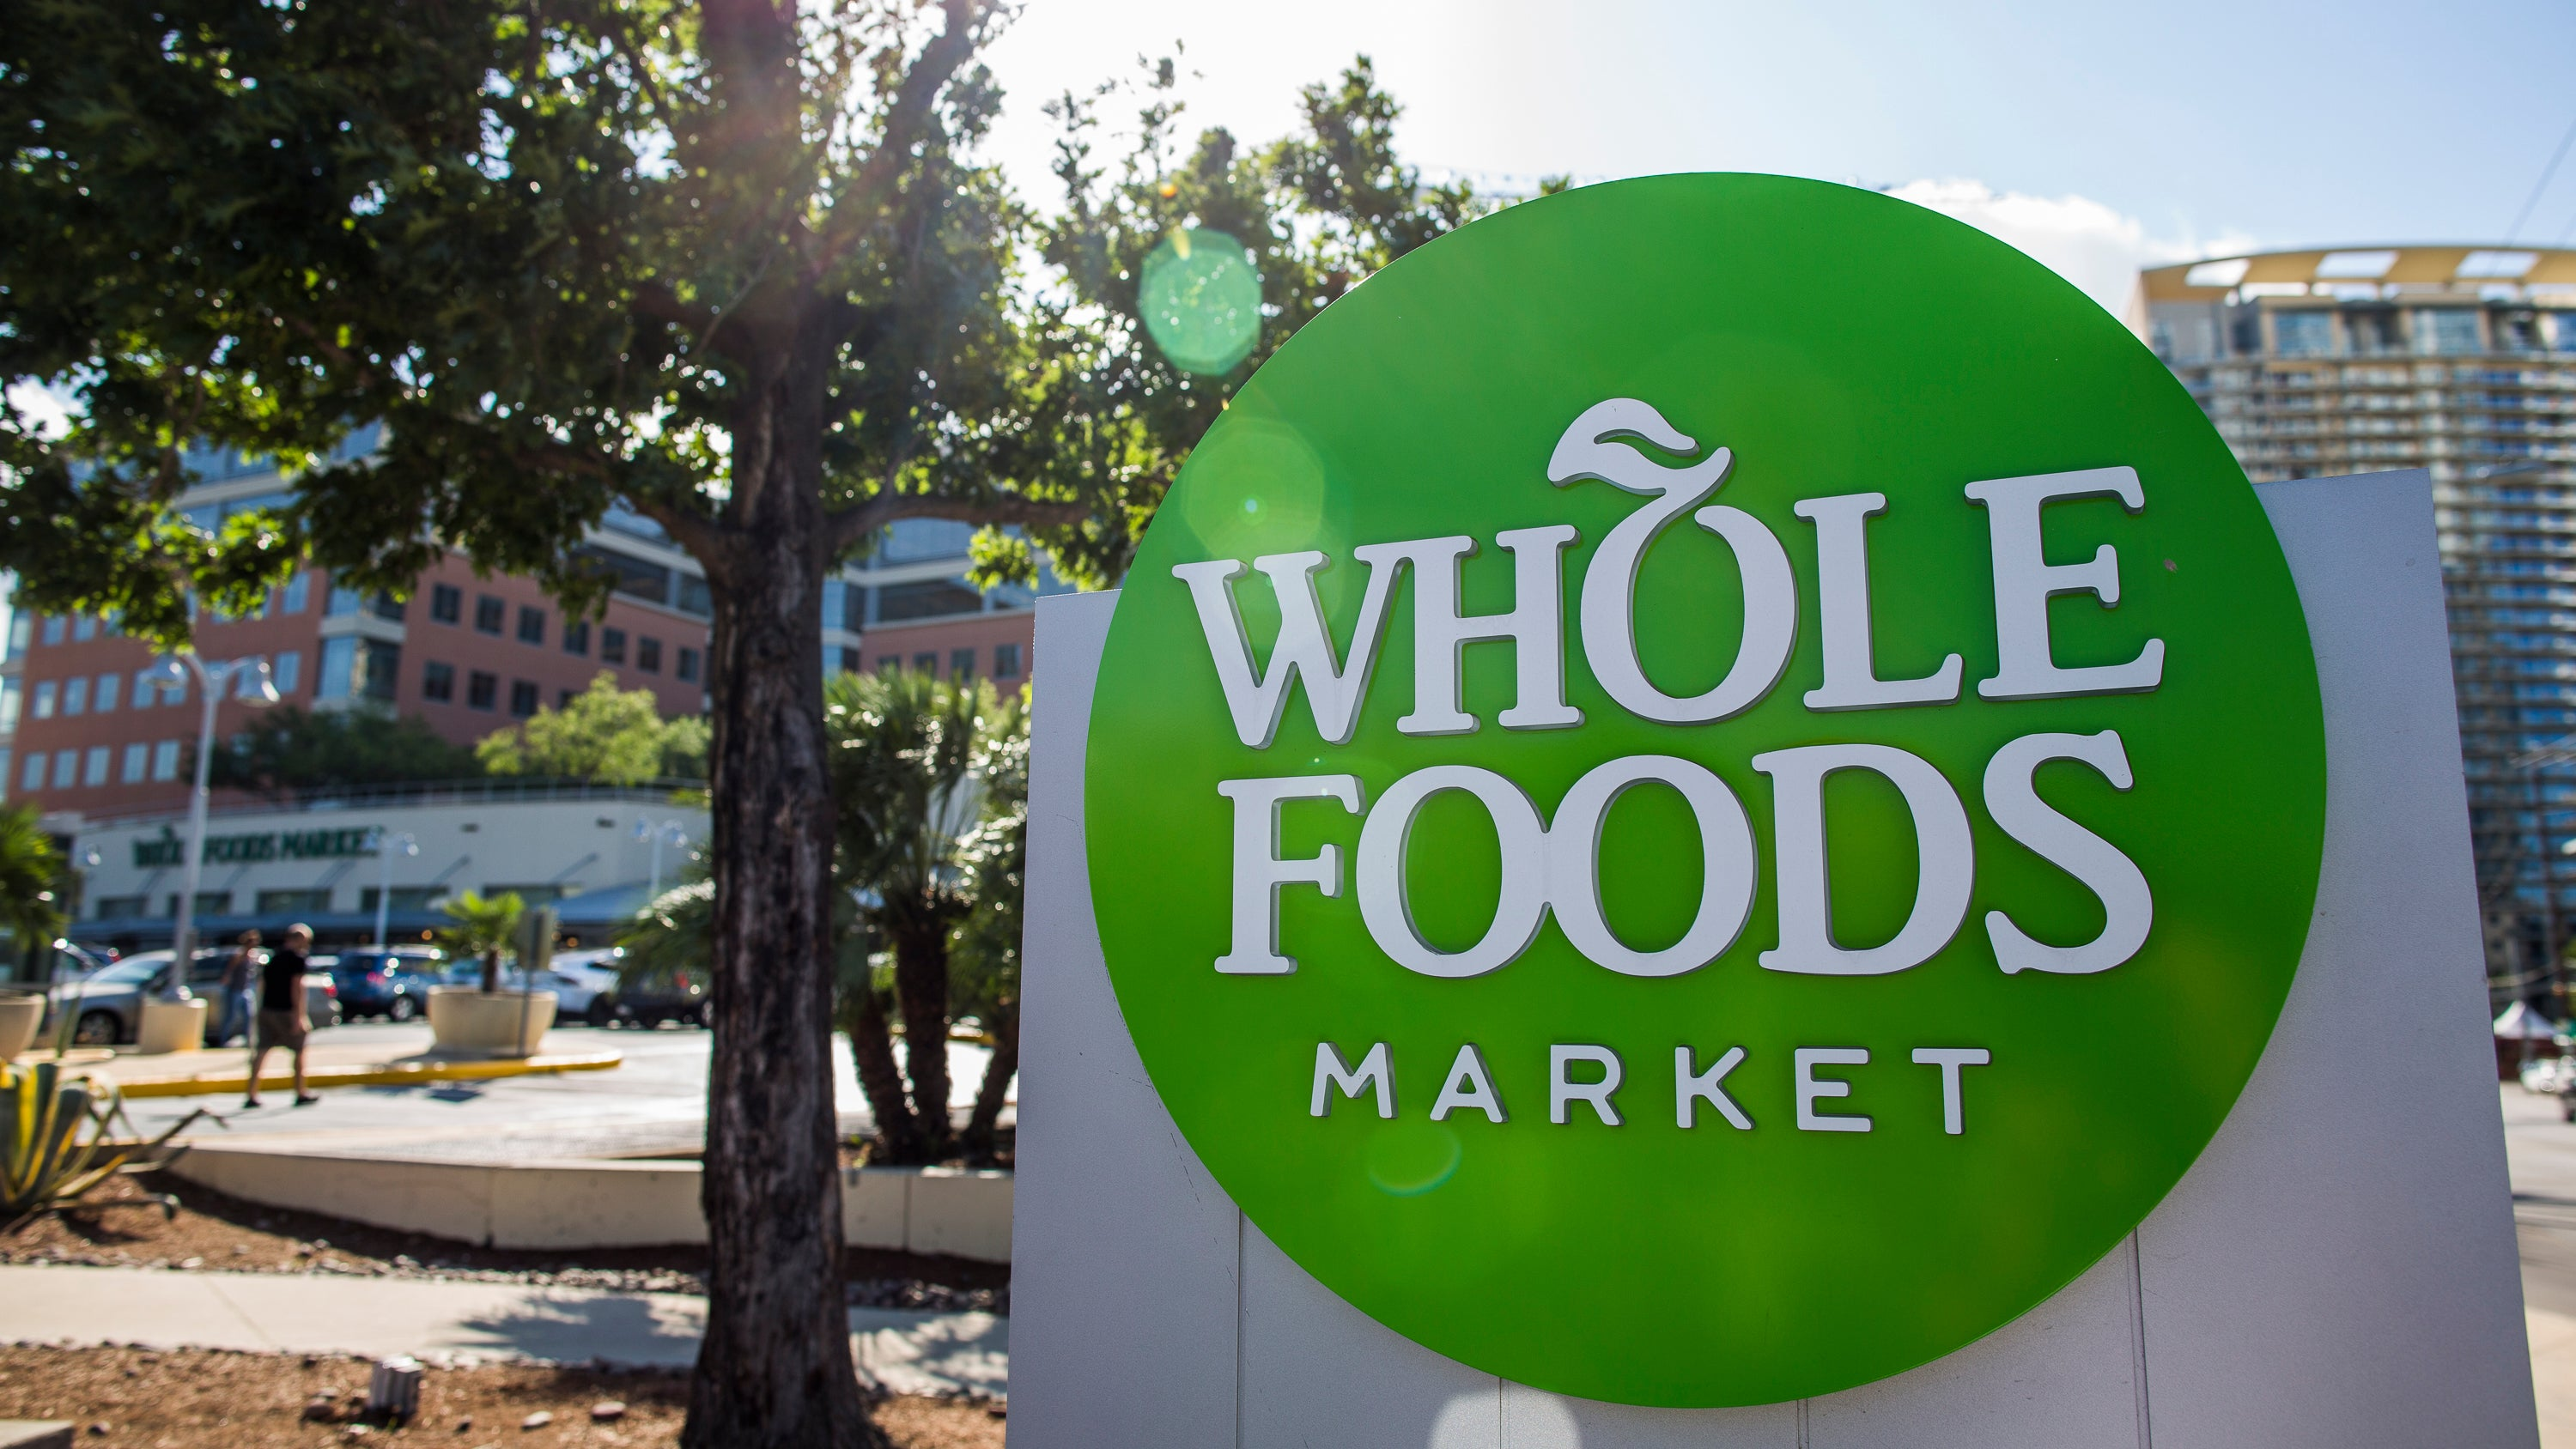 Whole Foods Market in Henrico County affected by credit card data breach